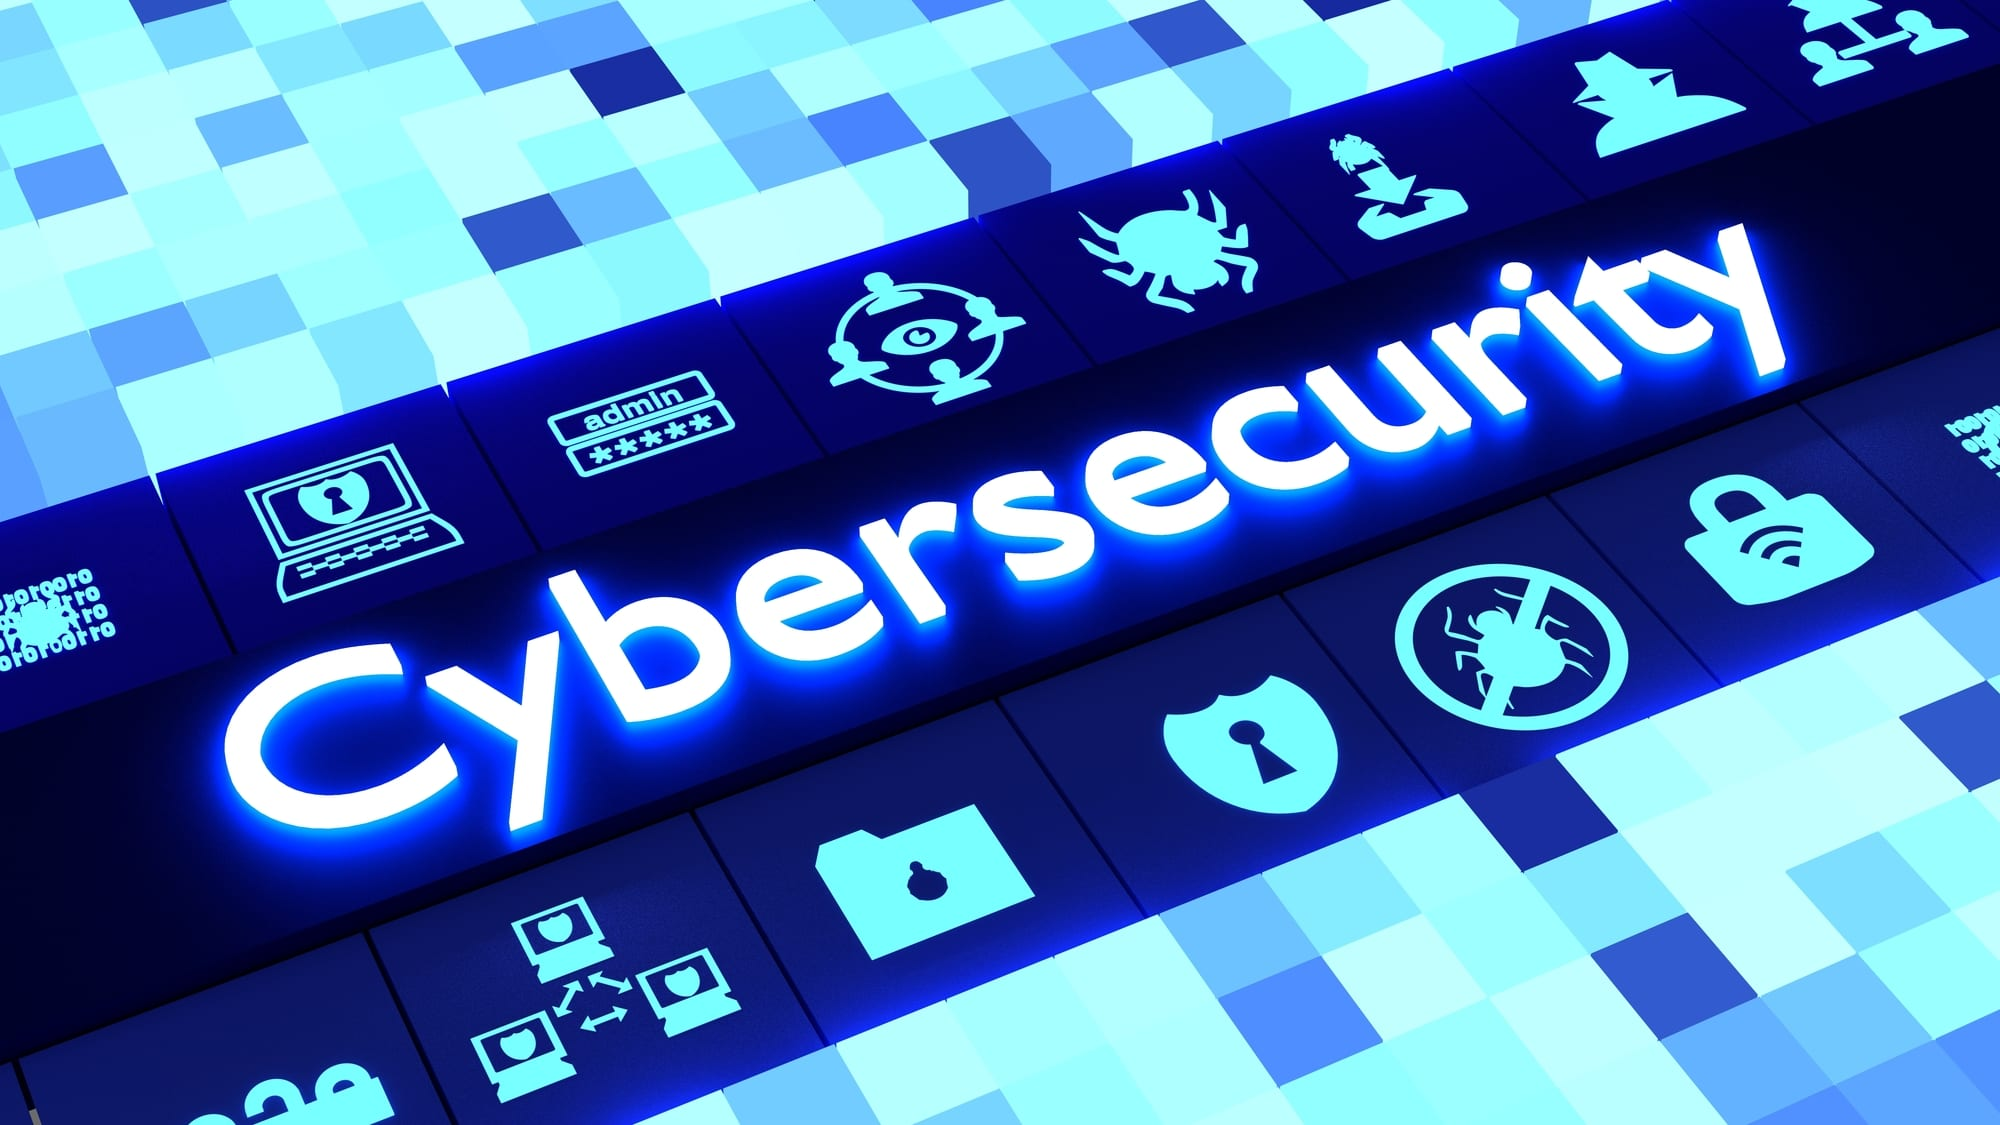 Top 5 Cybersecurity Recommendations – Tech Tip for November 25, 2019